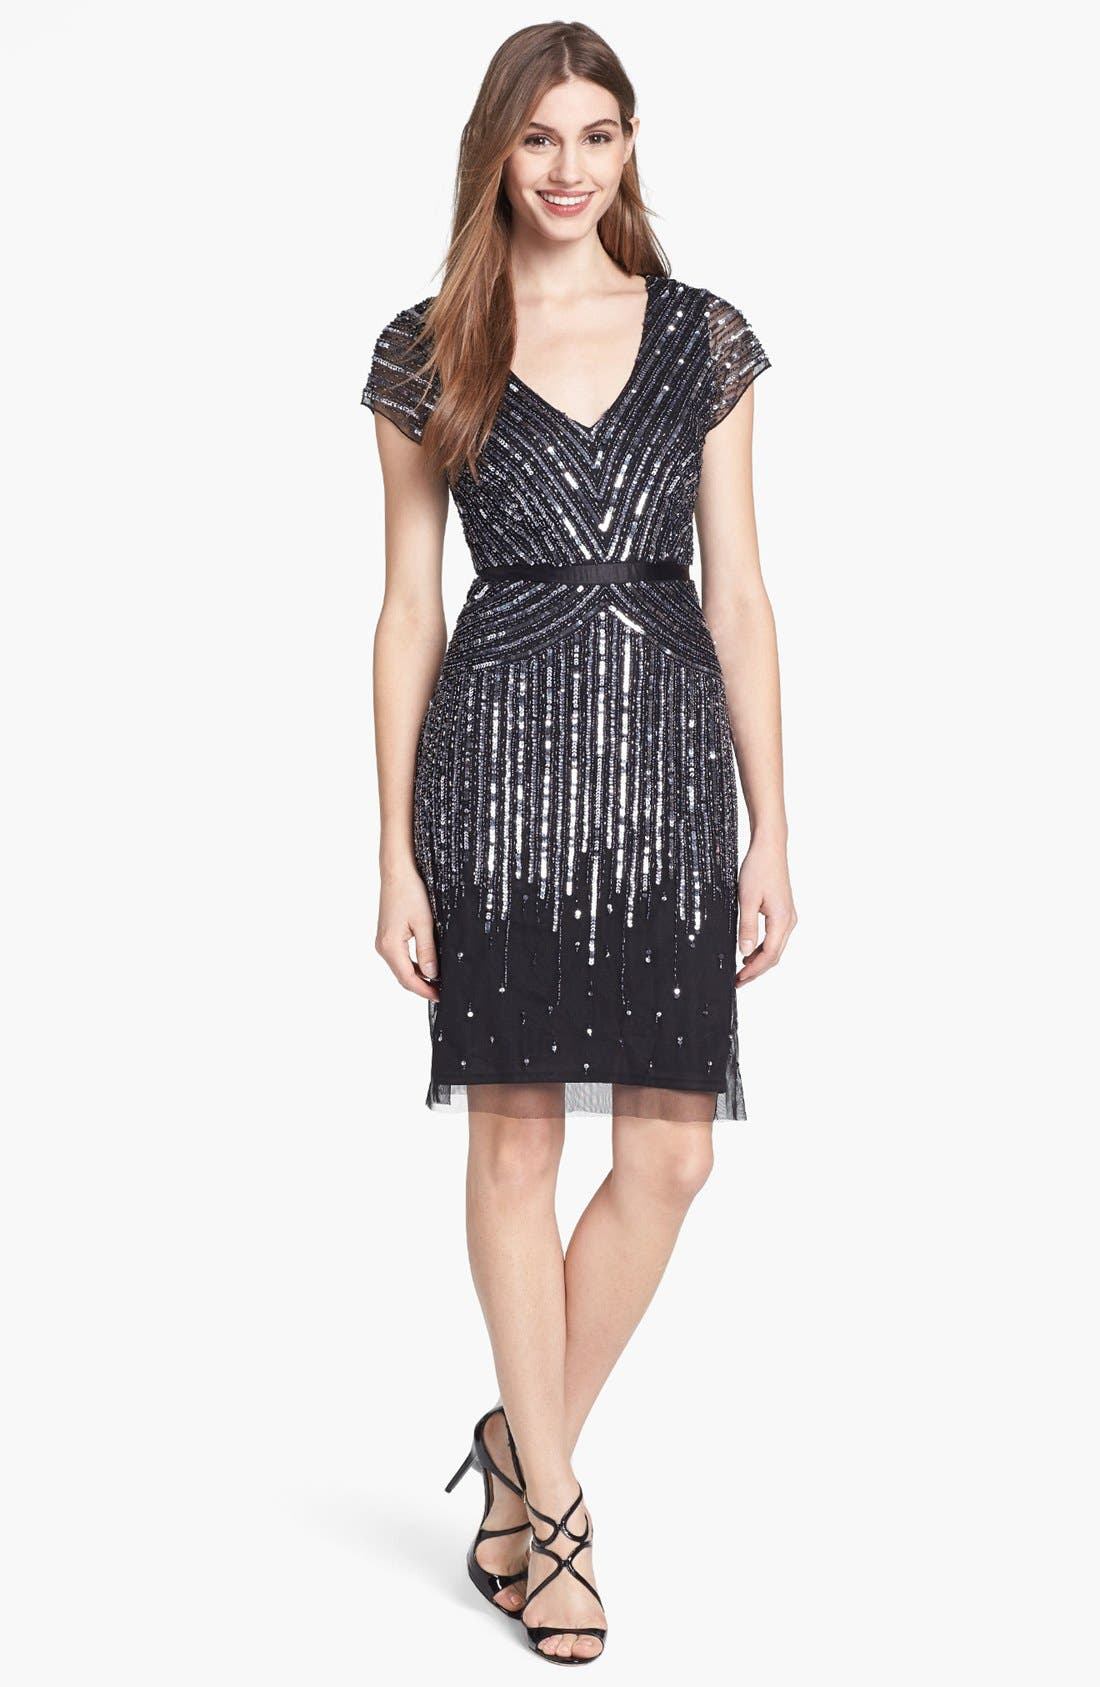 Alternate Image 1 Selected - Adrianna Papell Embellished Mesh Dress (Regular & Petite)